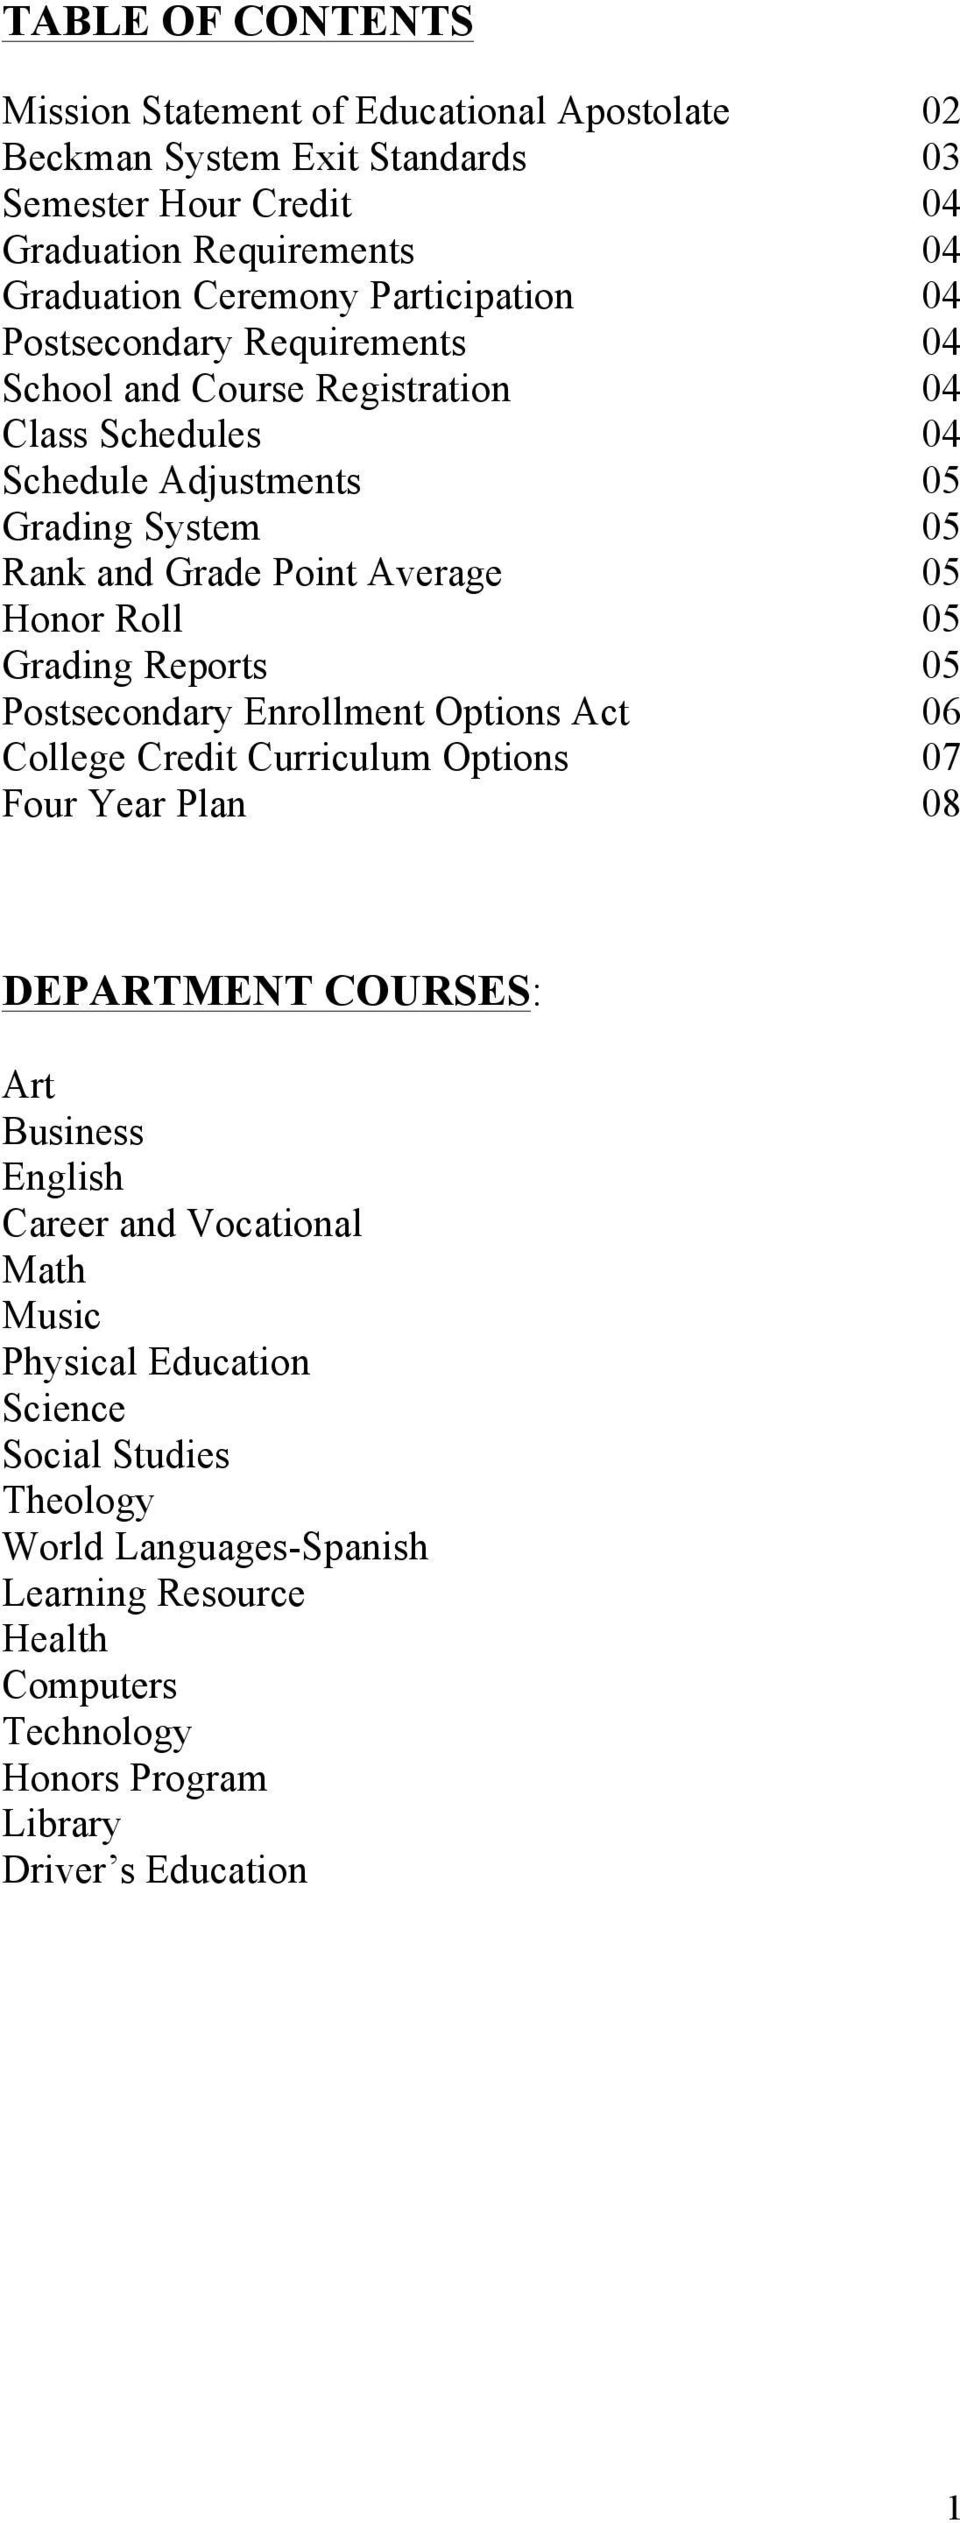 Honor Roll 05 Grading Reports 05 Postsecondary Enrollment Options Act 06 College Credit Curriculum Options 07 Four Year Plan 08 DEPARTMENT COURSES: Art Business English Career